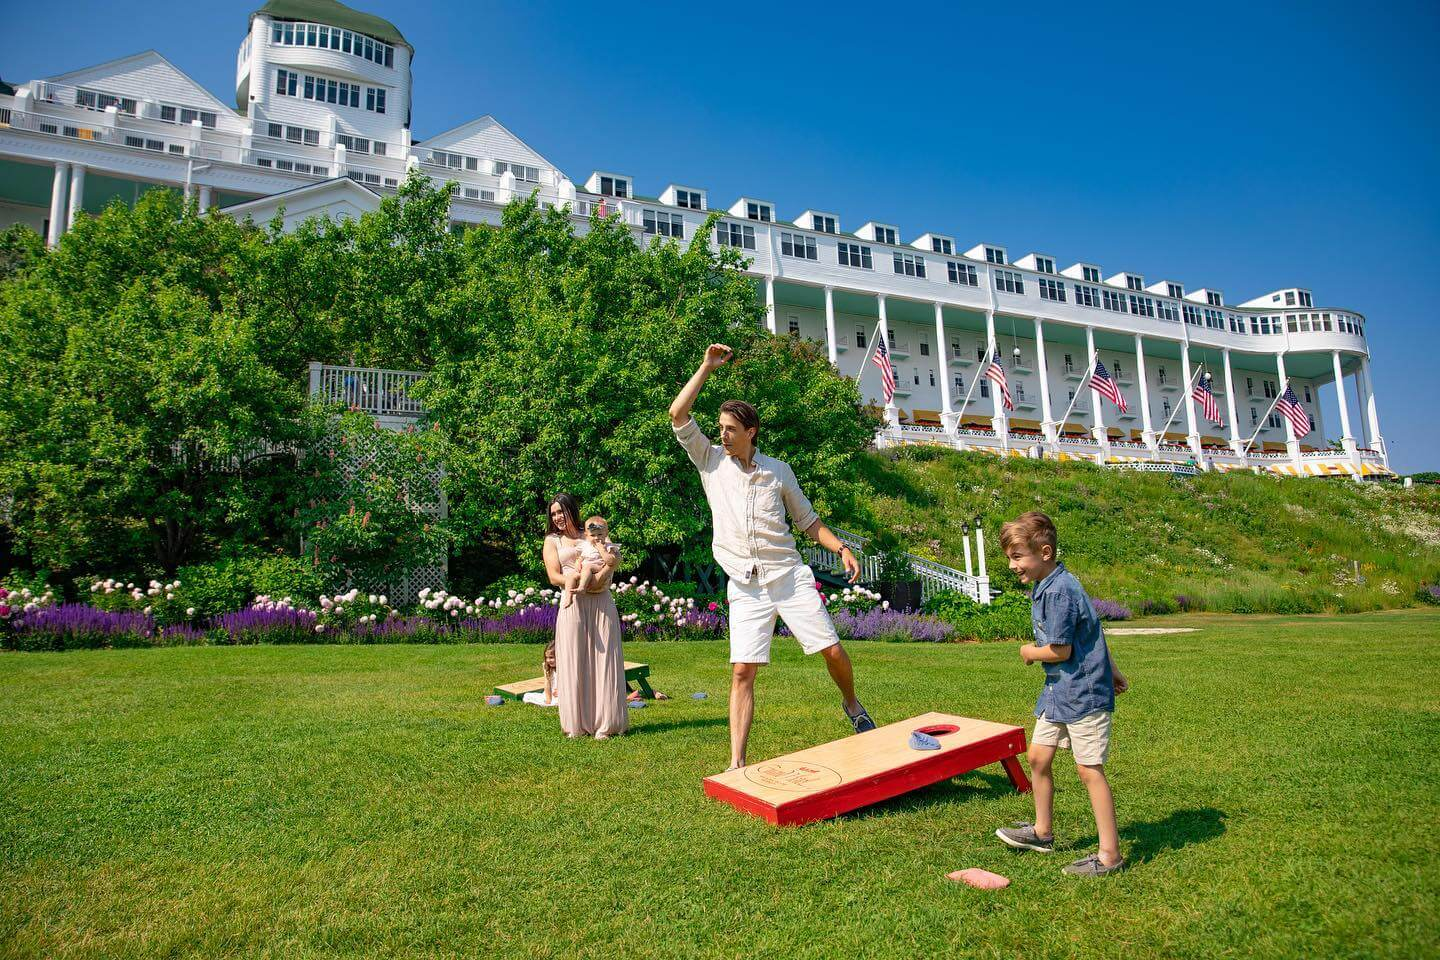 6 Family Activities For A Trip To Mackinac